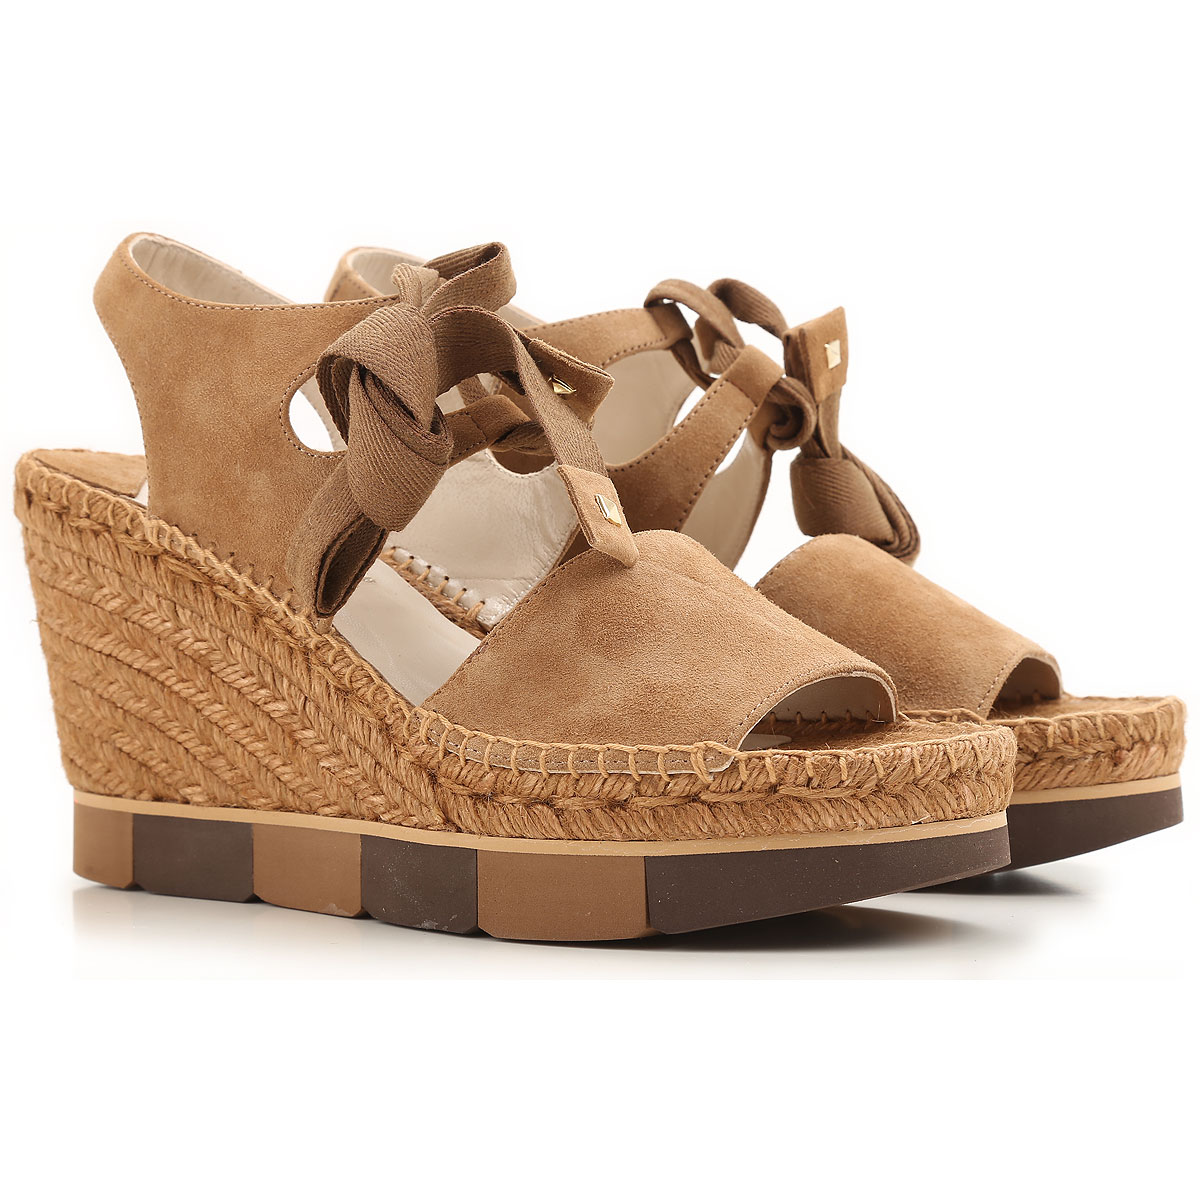 Paloma Barcelo Wedges for Women Taupe USA - GOOFASH